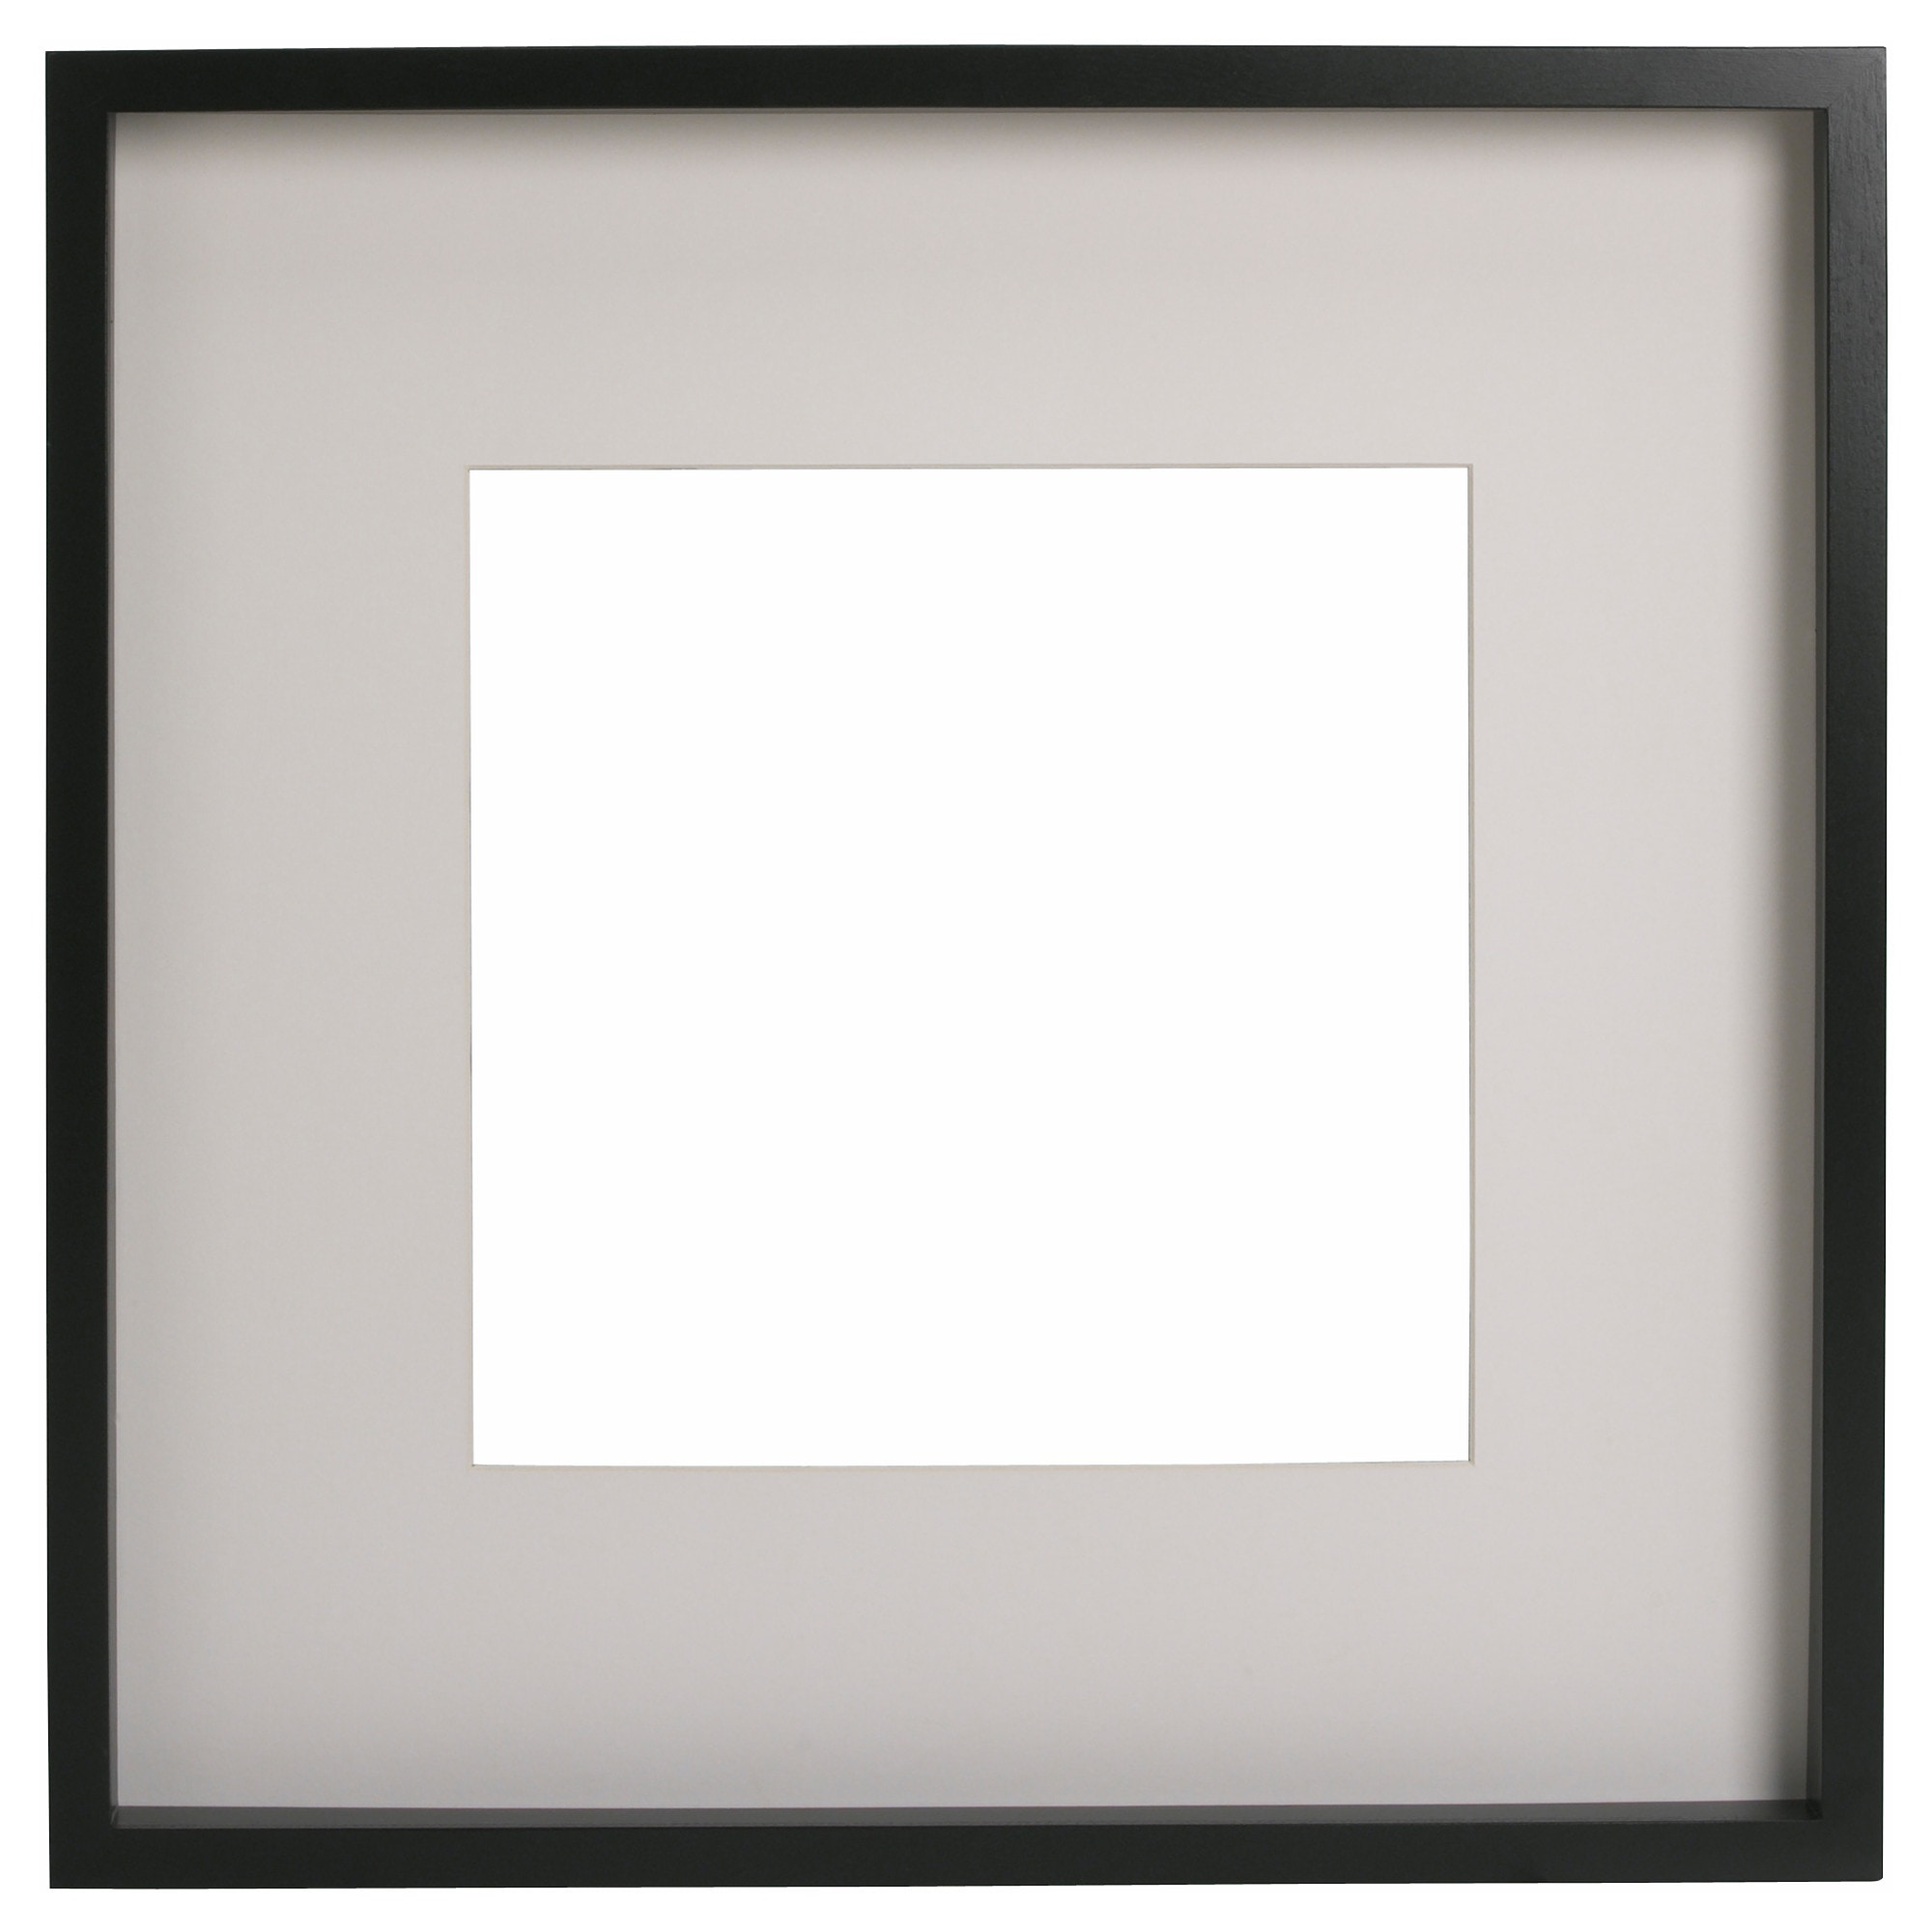 inter ikea systems bv 1999 2017 privacy policy - White Square Frames